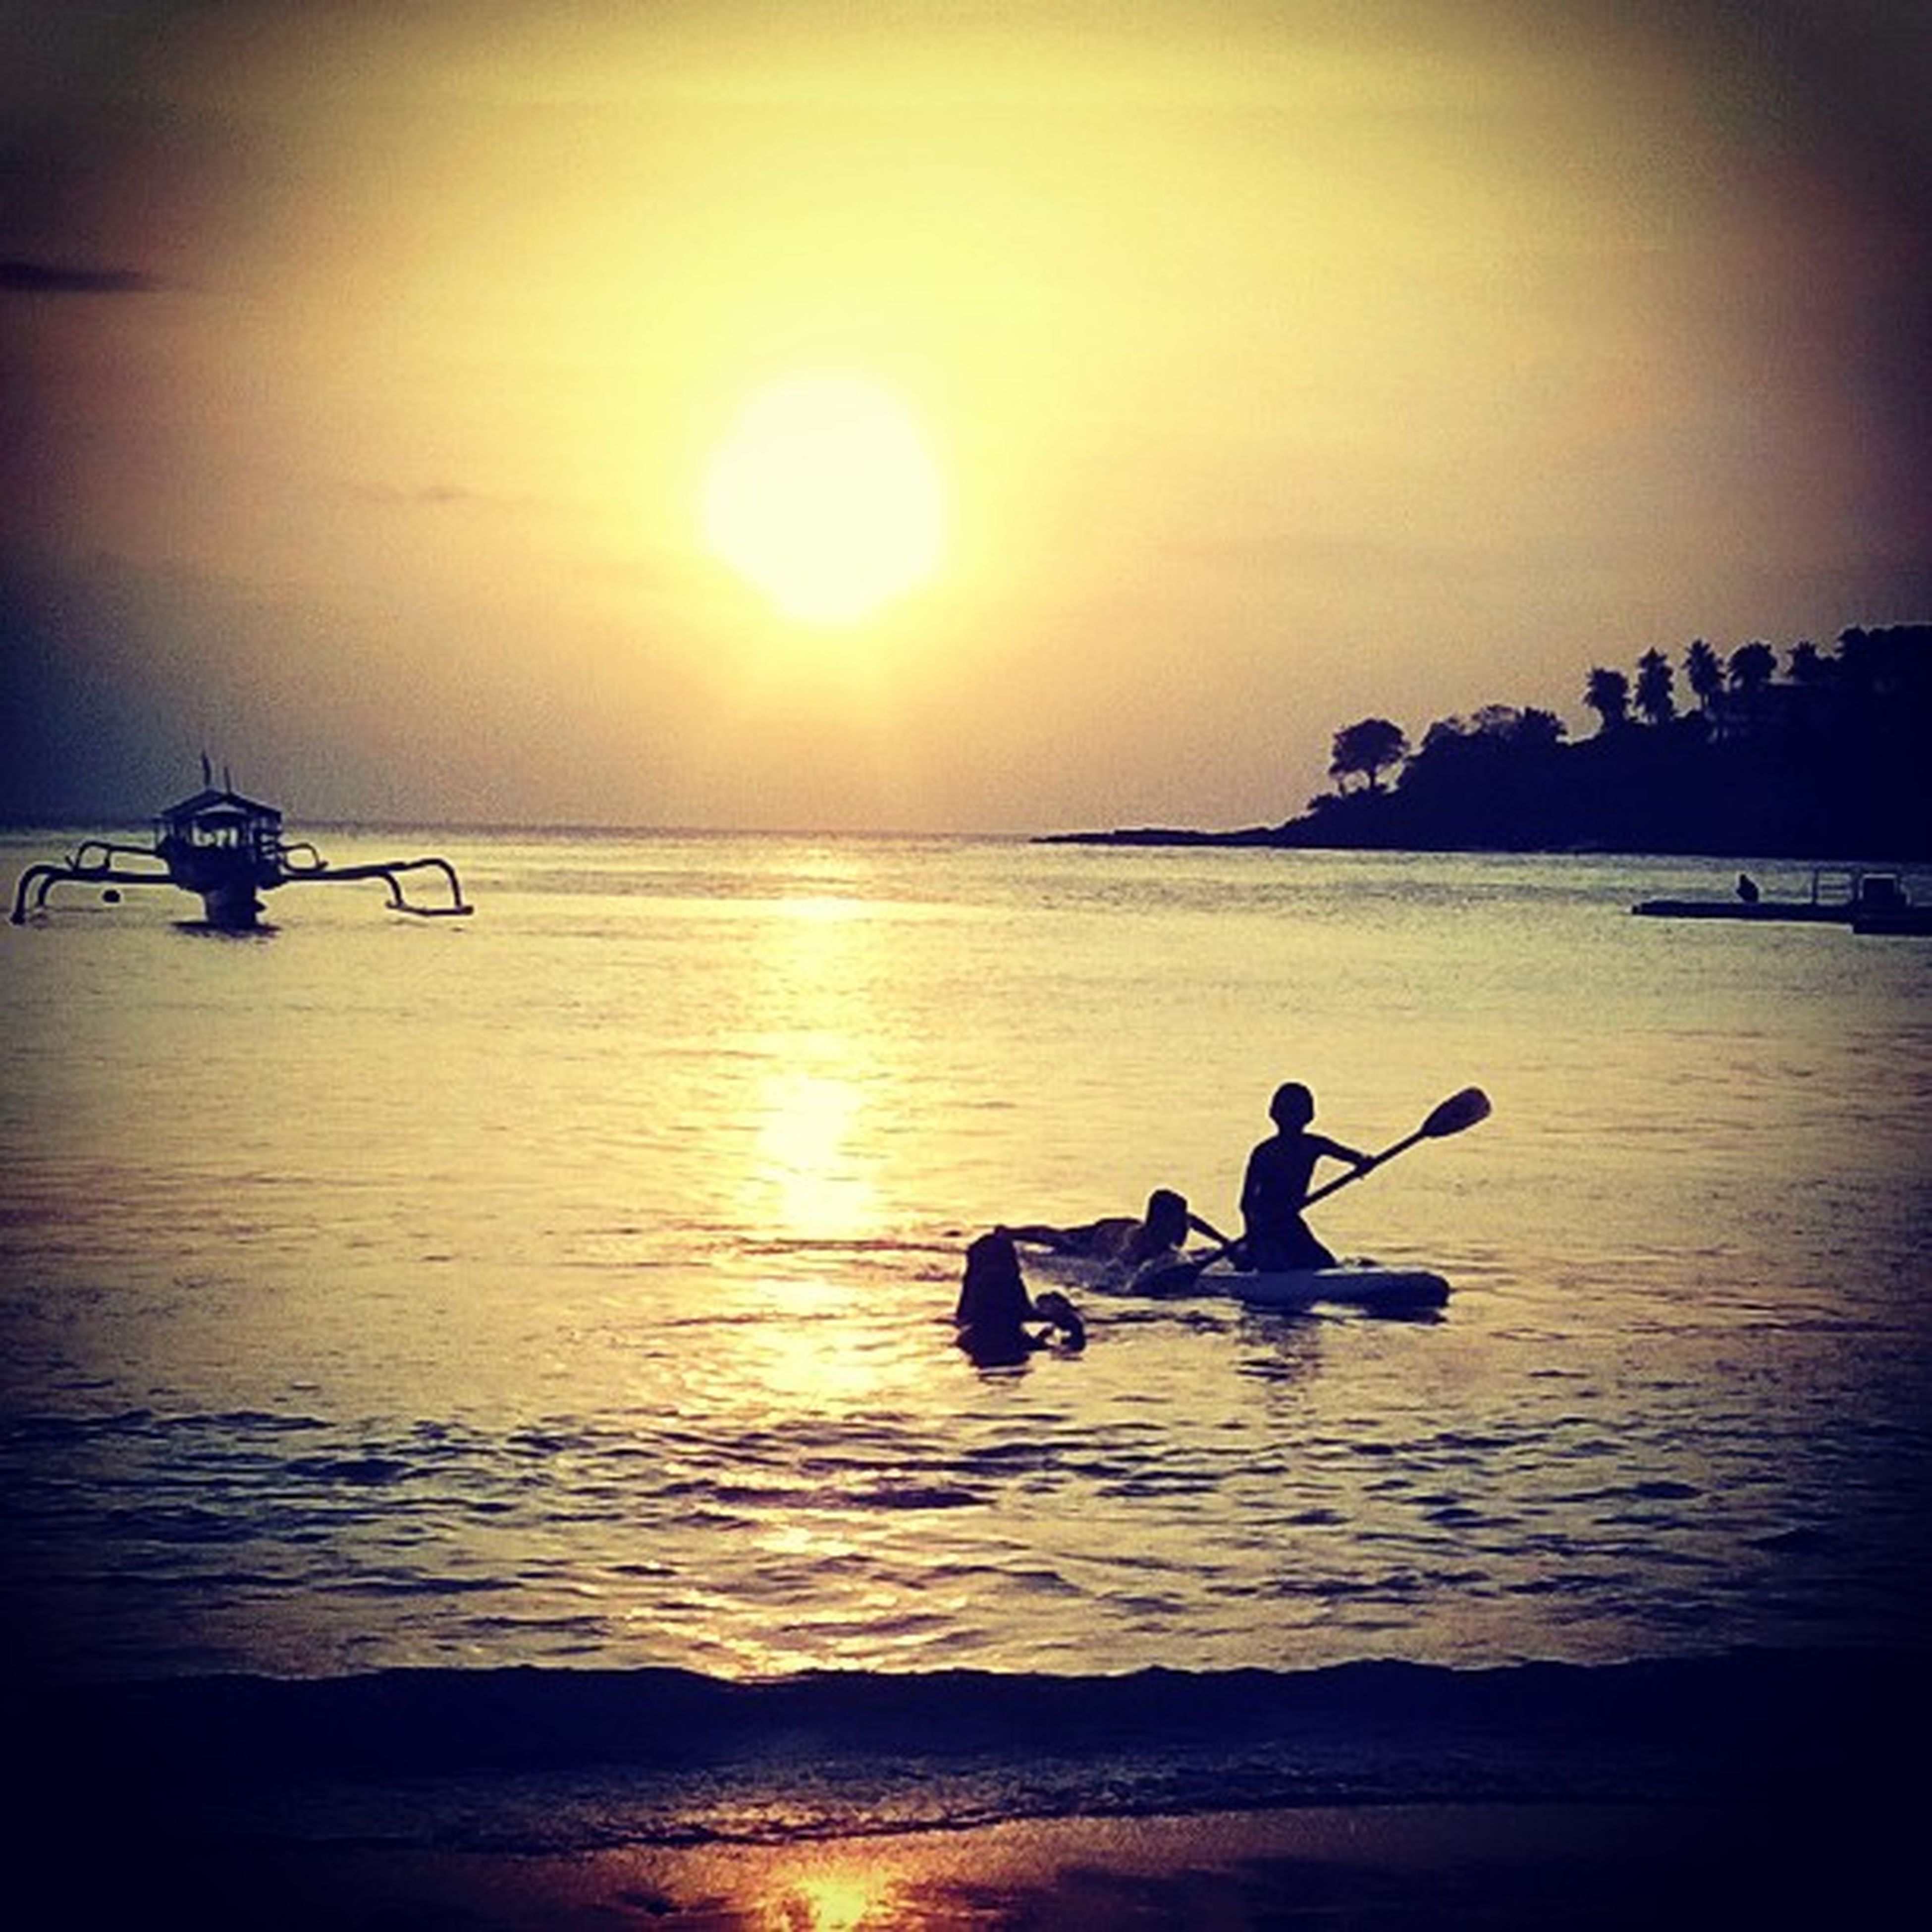 water, sunset, sea, silhouette, leisure activity, lifestyles, men, beach, horizon over water, sun, sky, reflection, scenics, transportation, beauty in nature, tranquility, tranquil scene